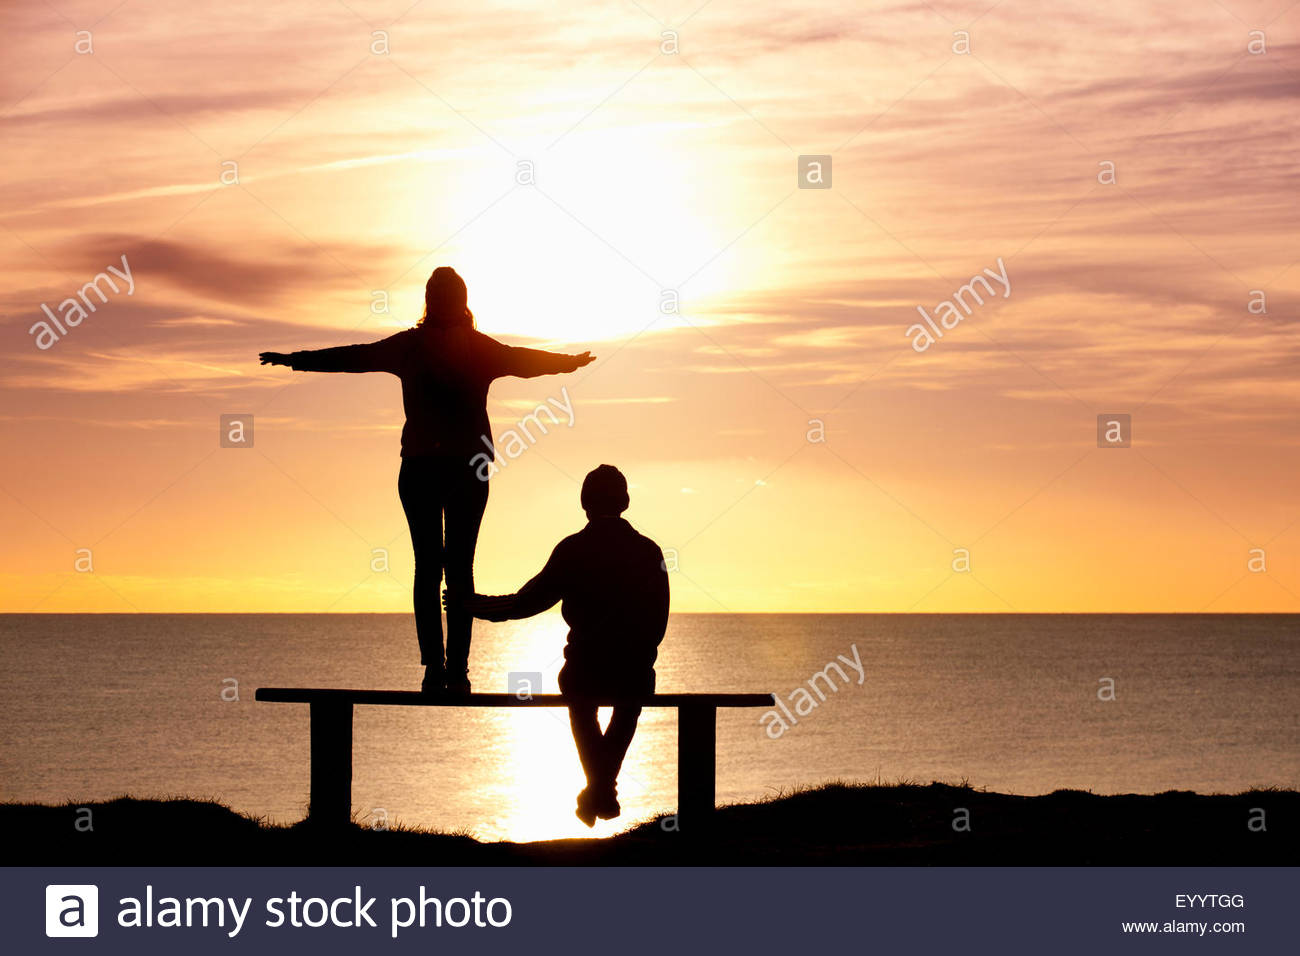 Silhouette of couple, standing on bench with arms outstretched, against sunset over the ocean - Stock Image